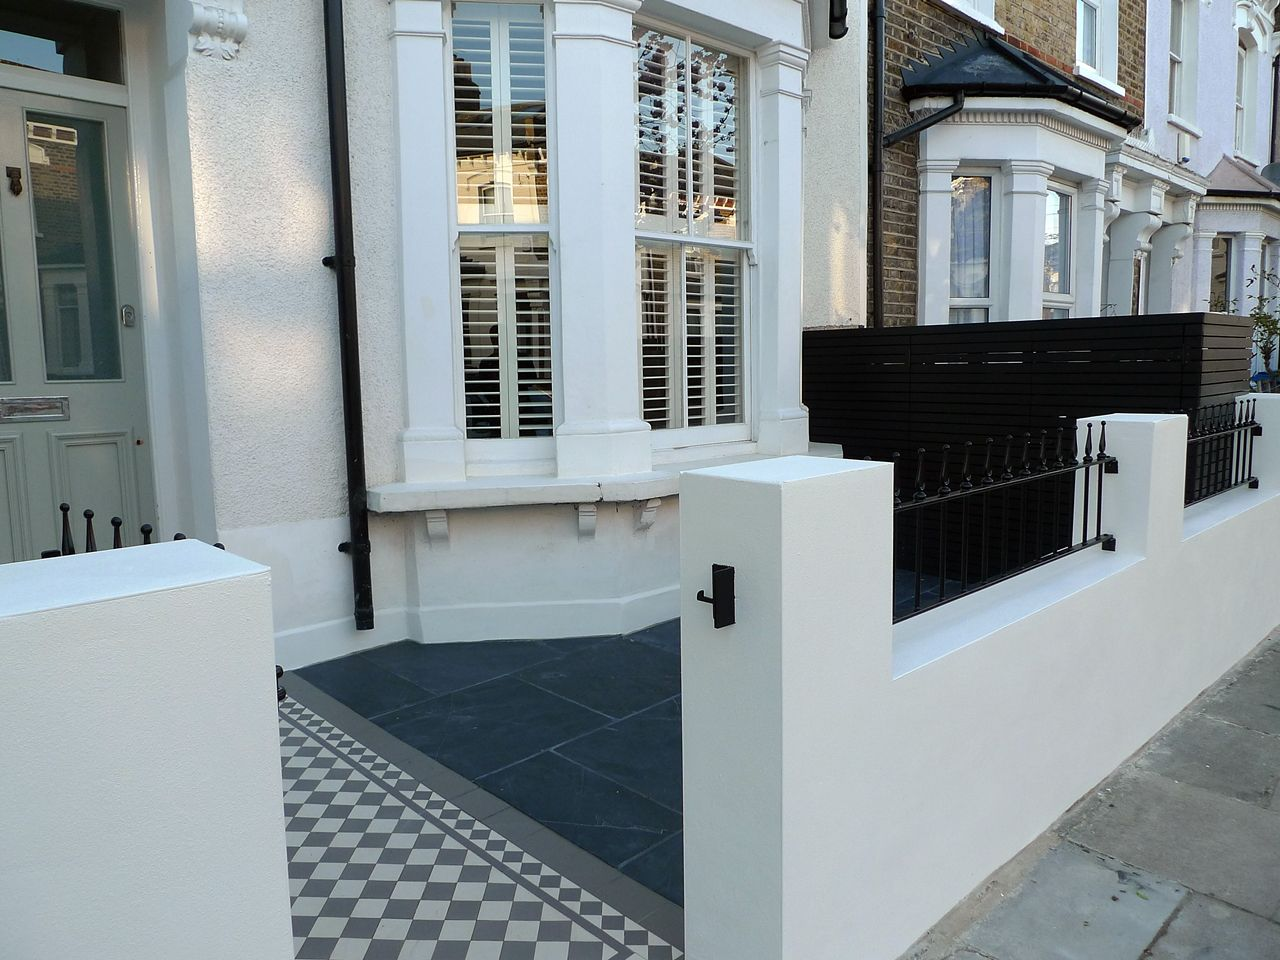 victorian front garden design london render plaster block wall slate paving bin bike store bespoke grey and white mosaic